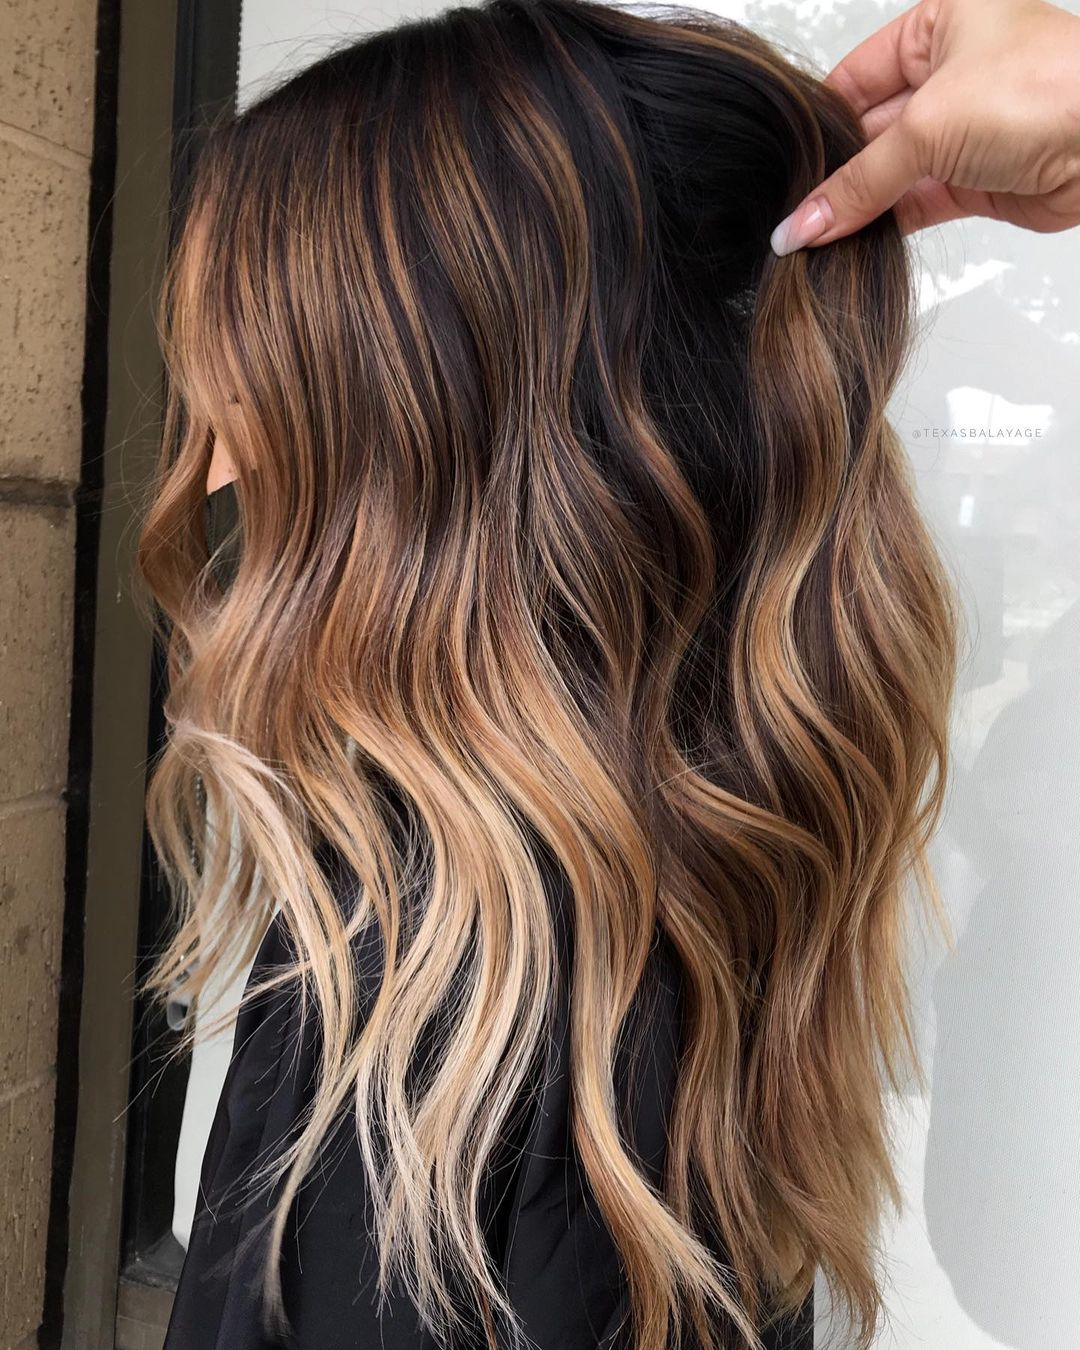 Caramel Brown Balayage with Blonde Highlights